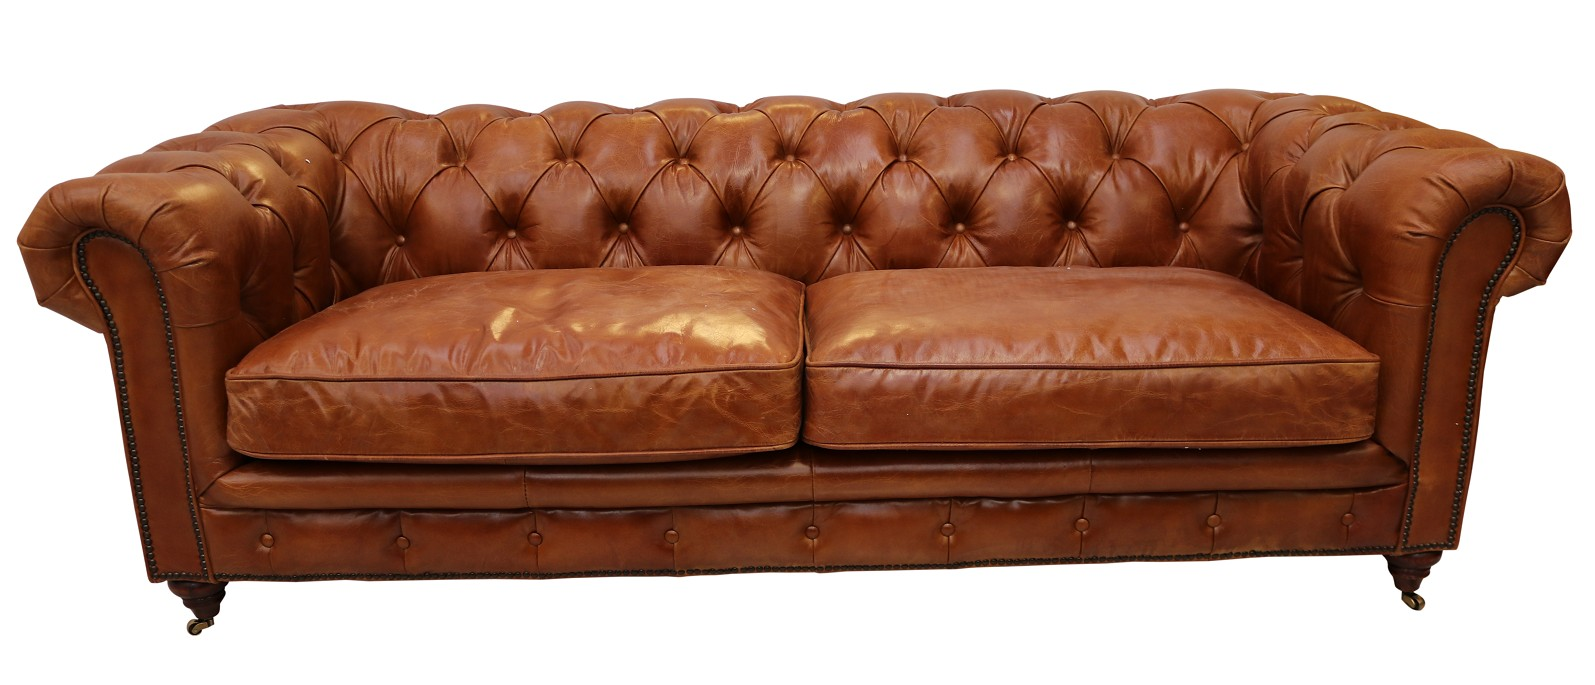 Bettsofa Vintage Vintage Distressed Tan Leather Chesterfield 3 Seater Sofa